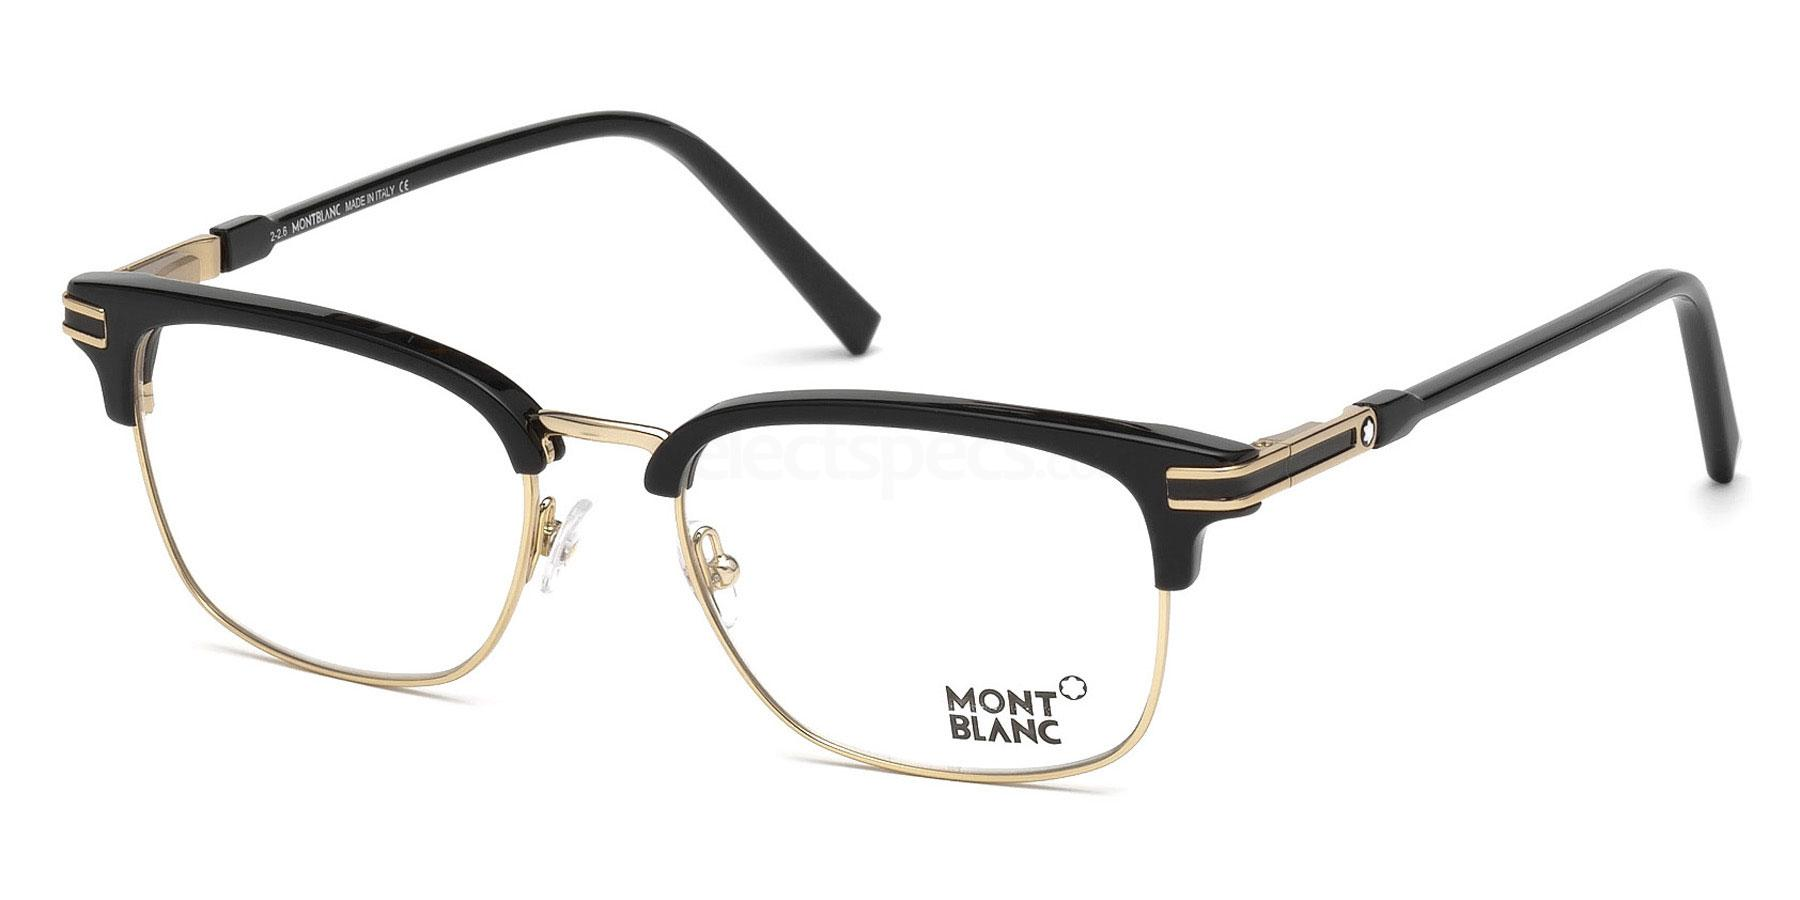 A01 MB0669 Glasses, Mont Blanc